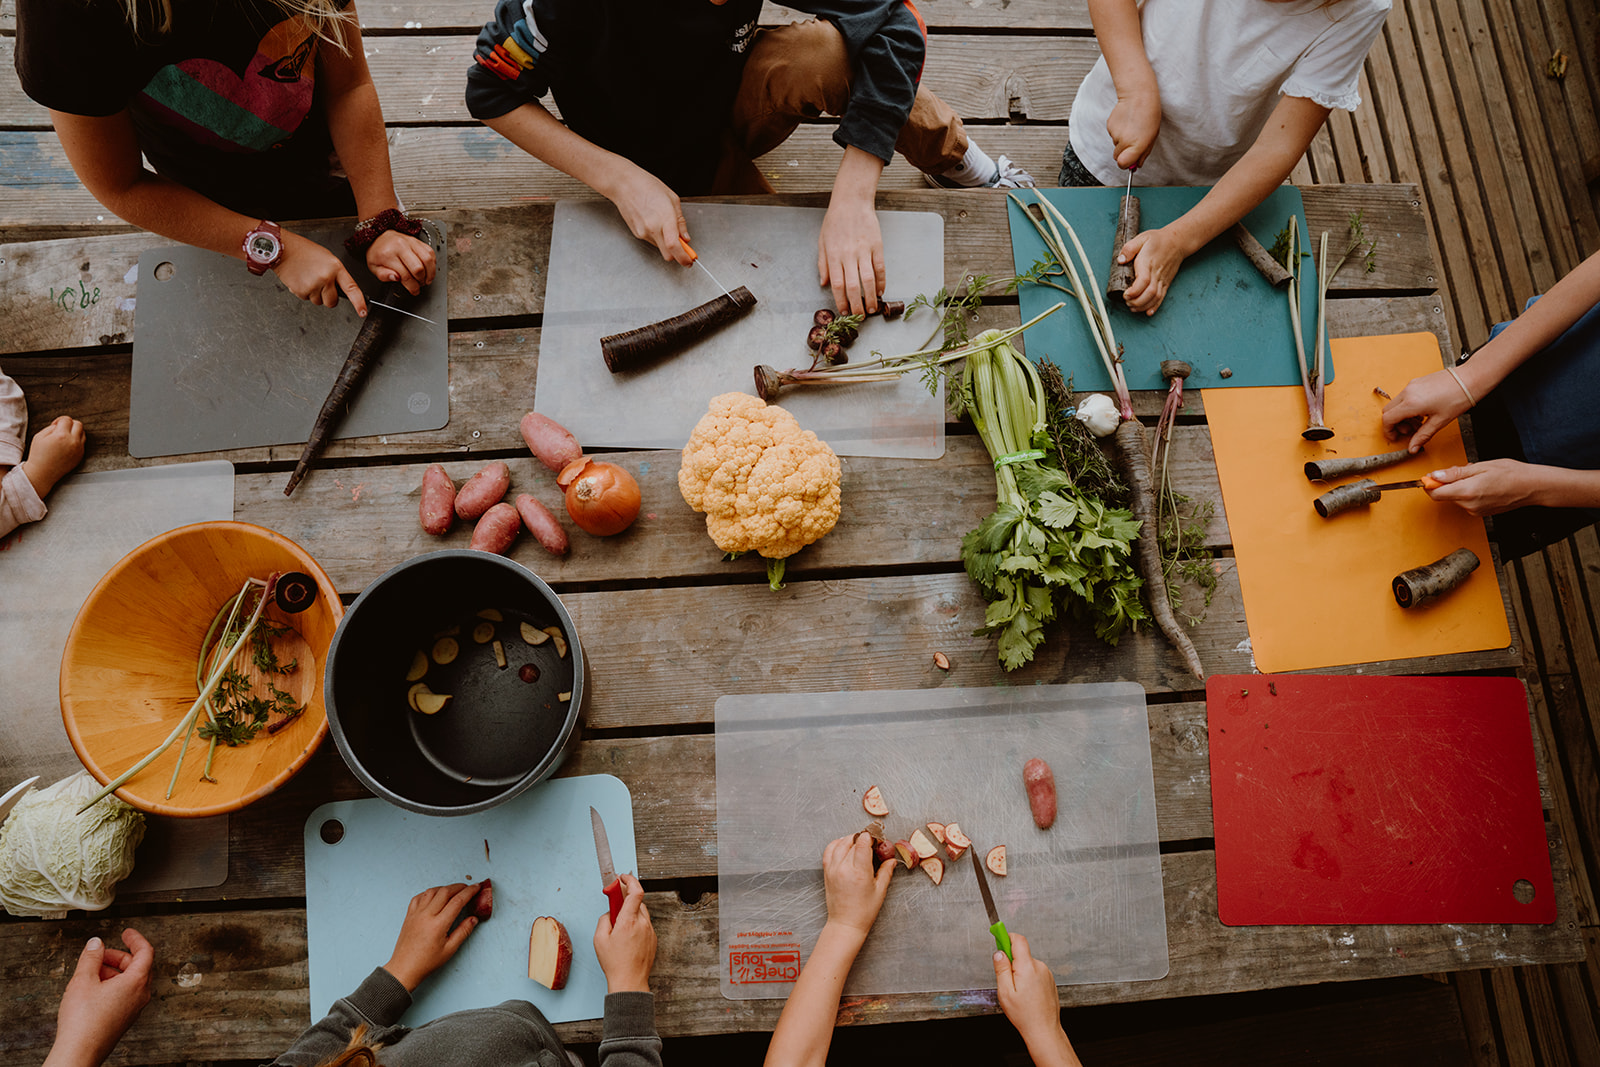 Top down shot of children gathered around table prepping food.